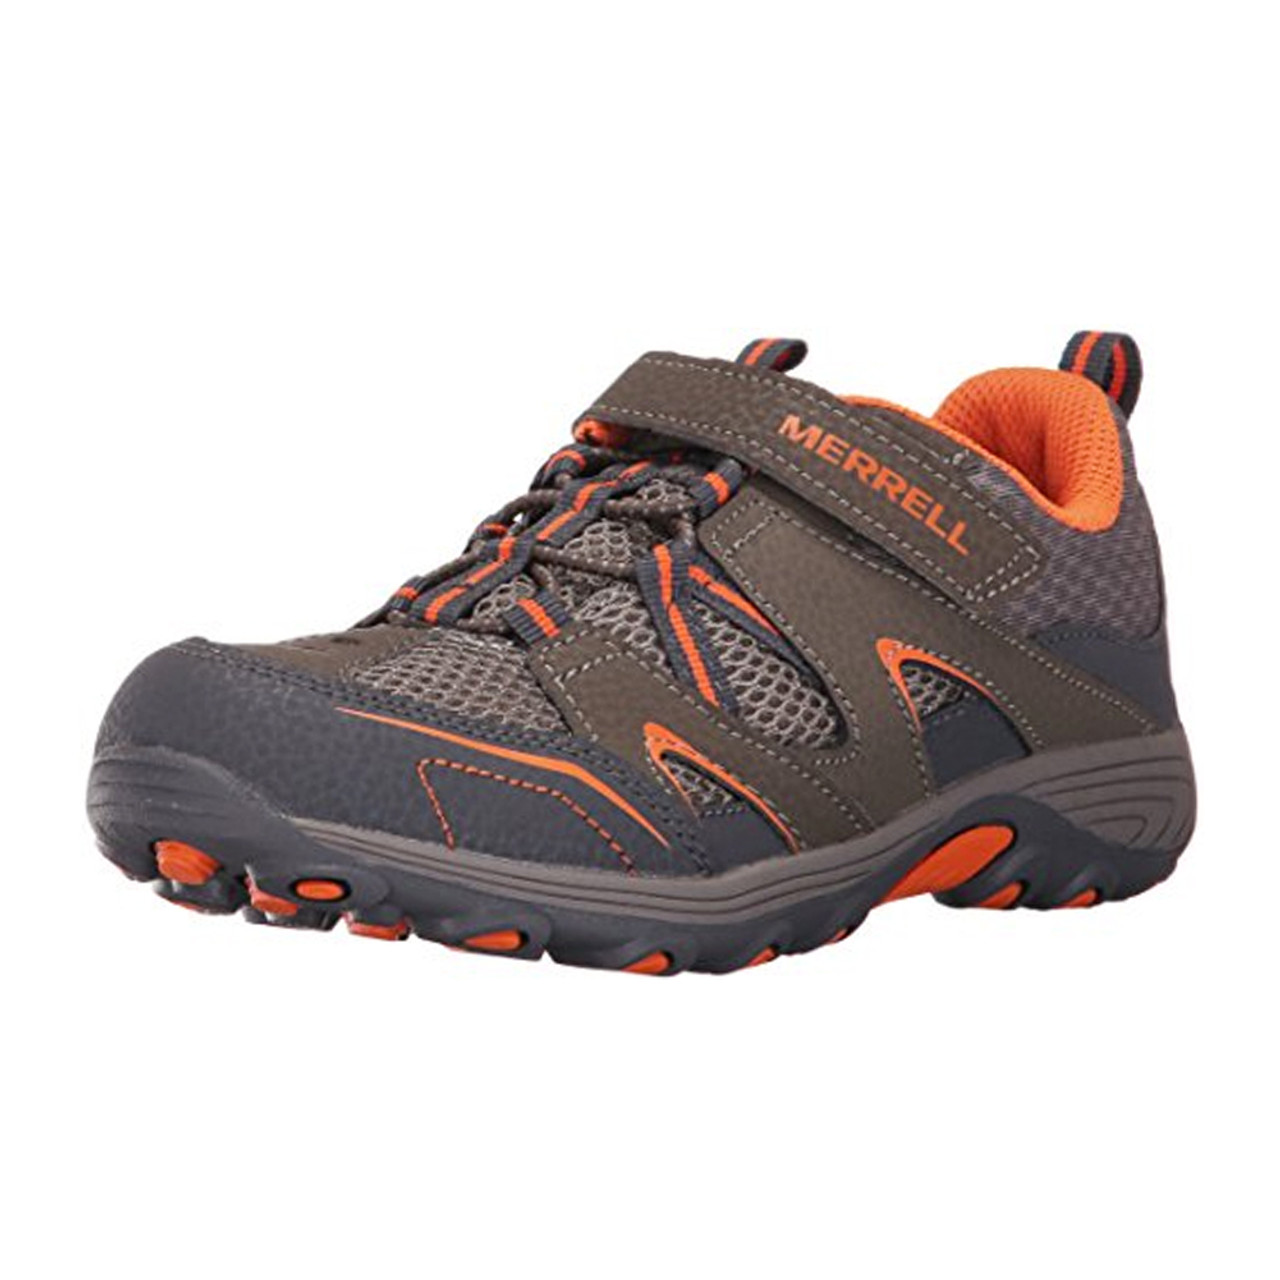 5722d01c70a2 Merrell Children s Trail Chaser - MetroShoe Warehouse